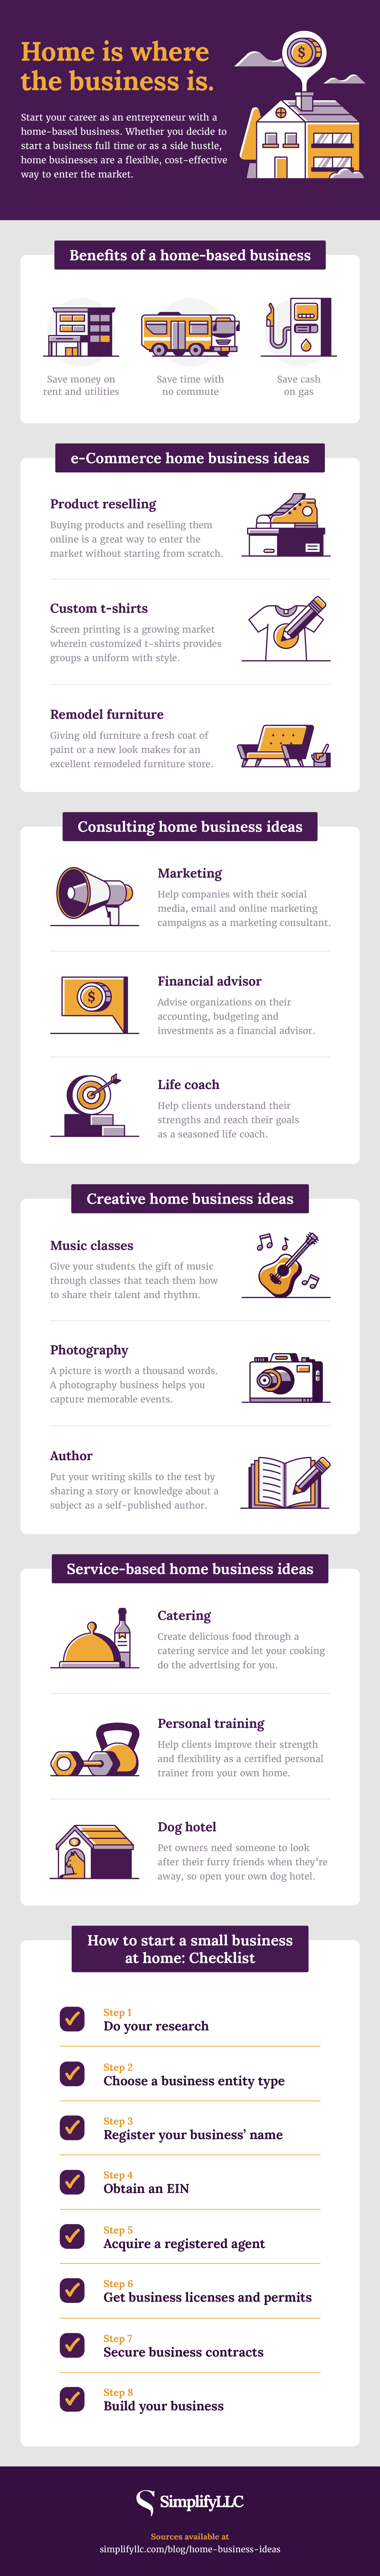 Home business ideas infographic